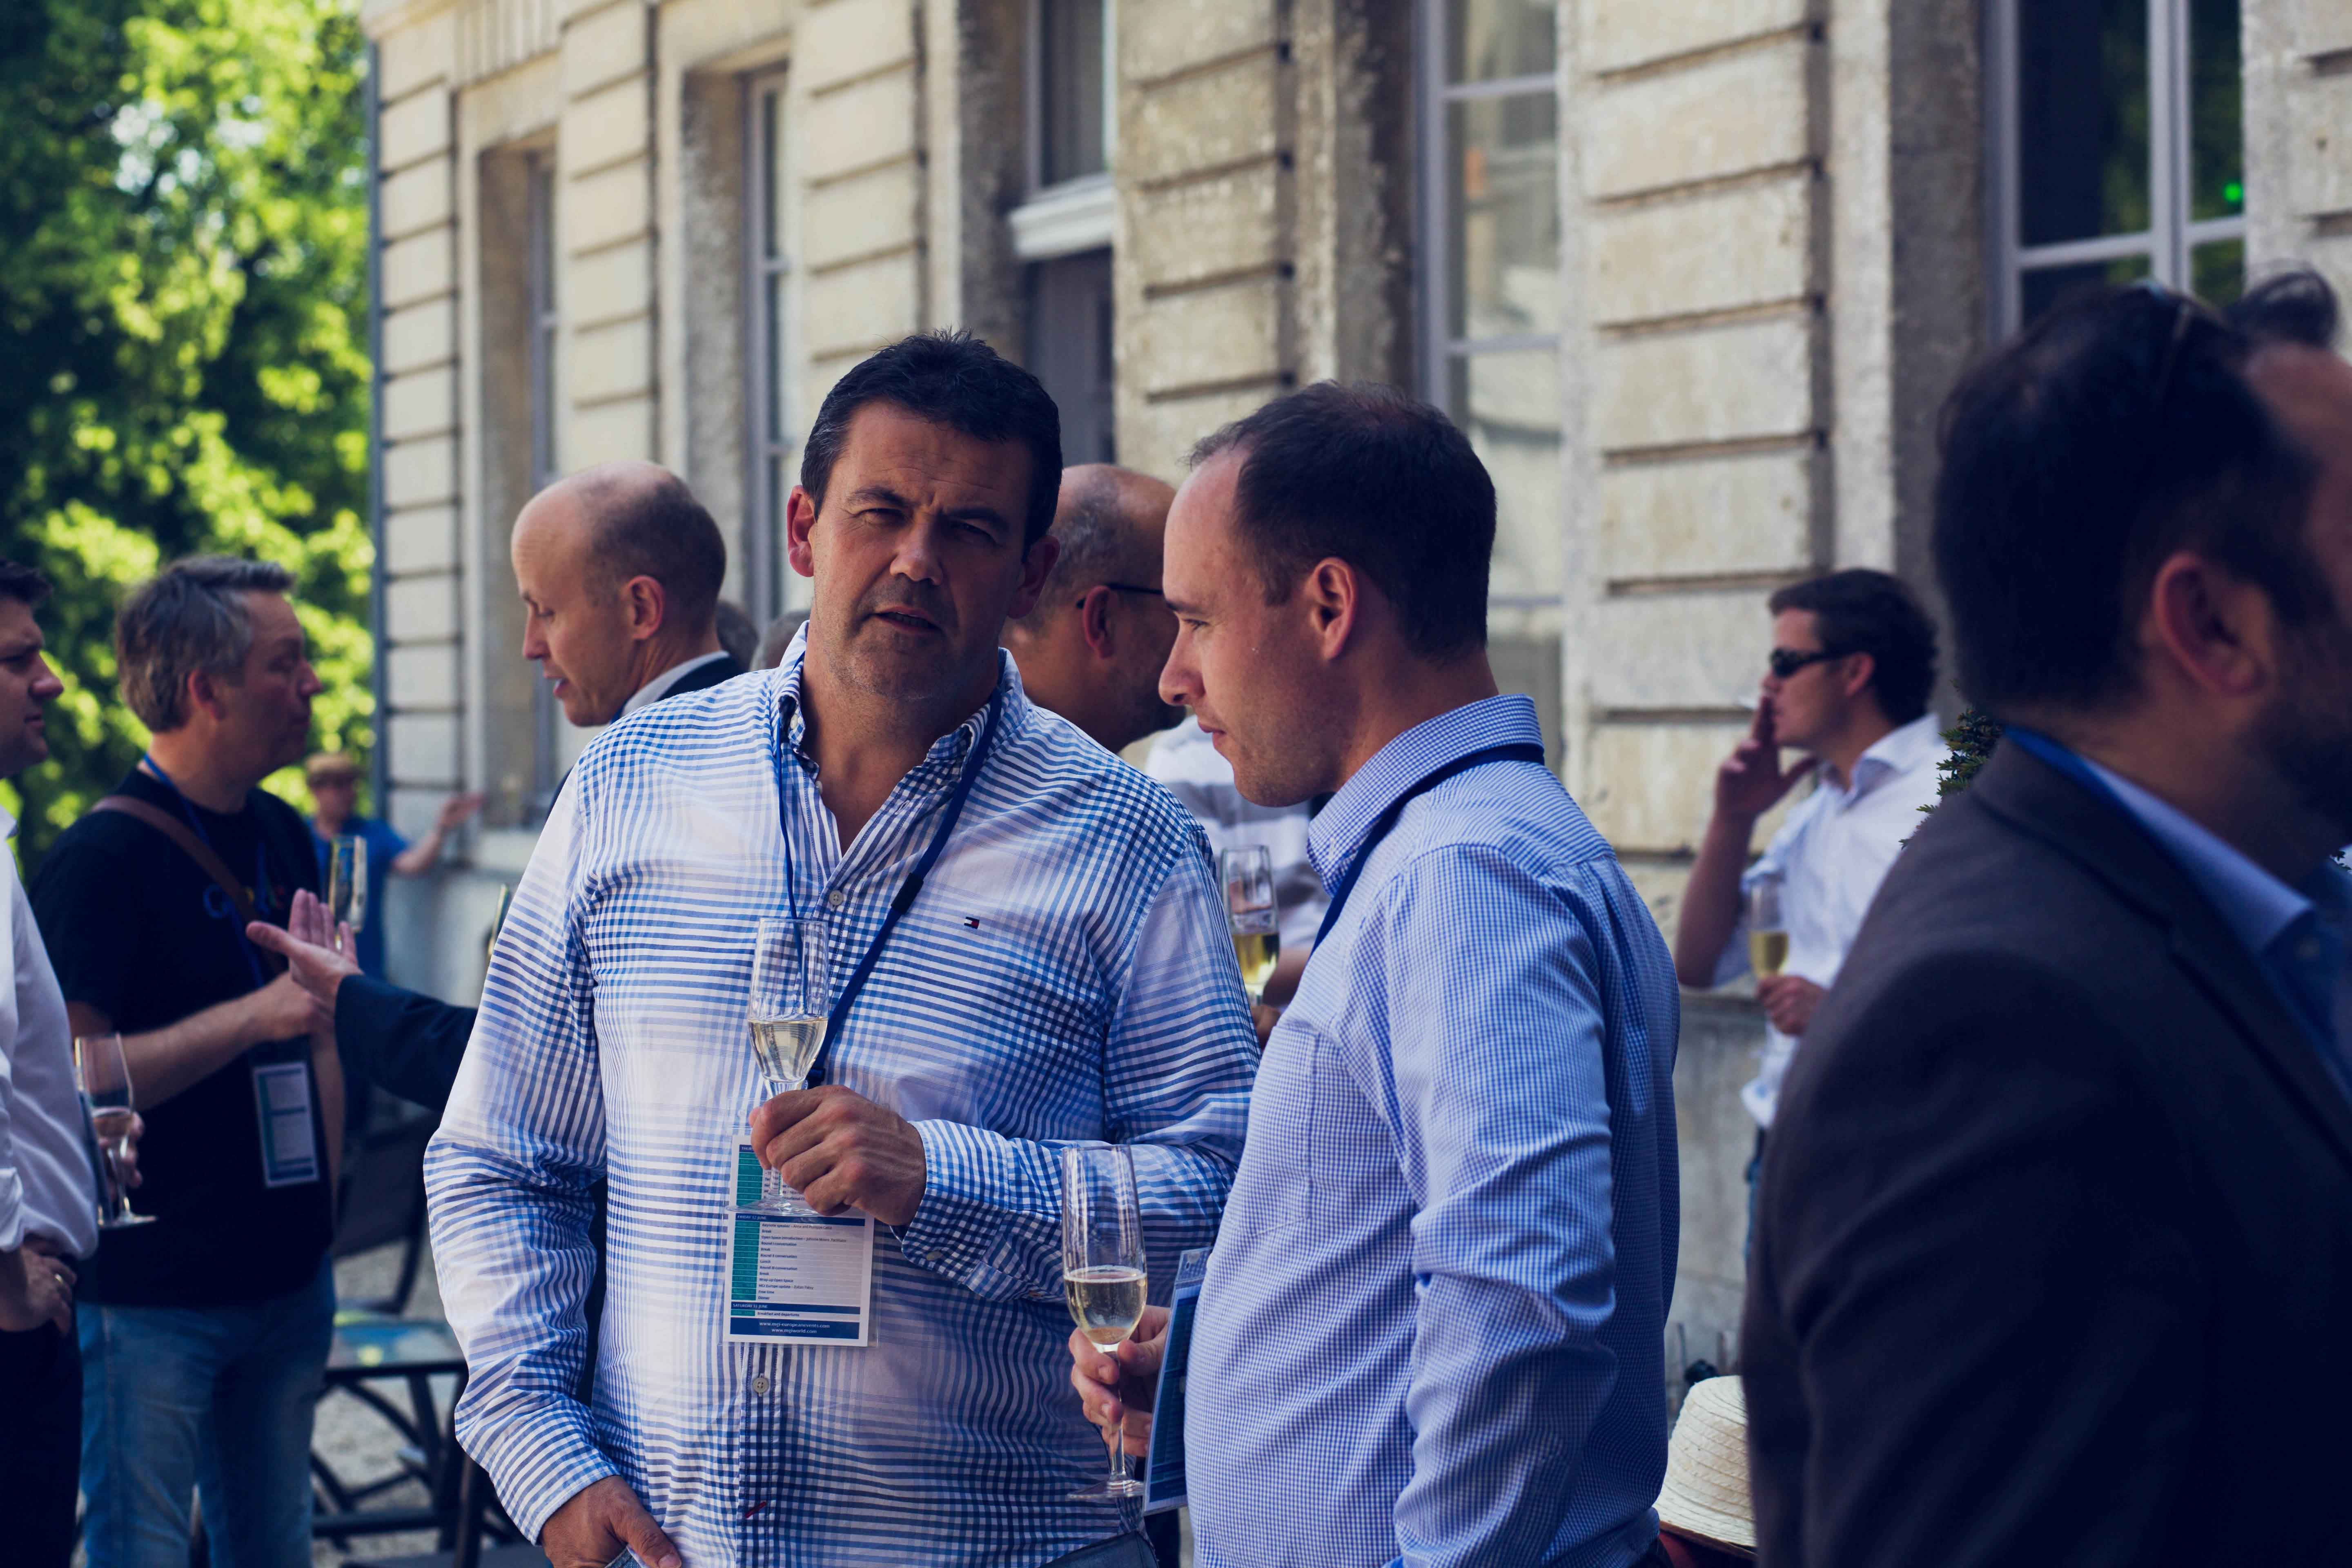 MGI World MGI Worldwide Europe Area Meeting 2015, Le Grand Mello, accounting delegate Nico Hansen outdoors image